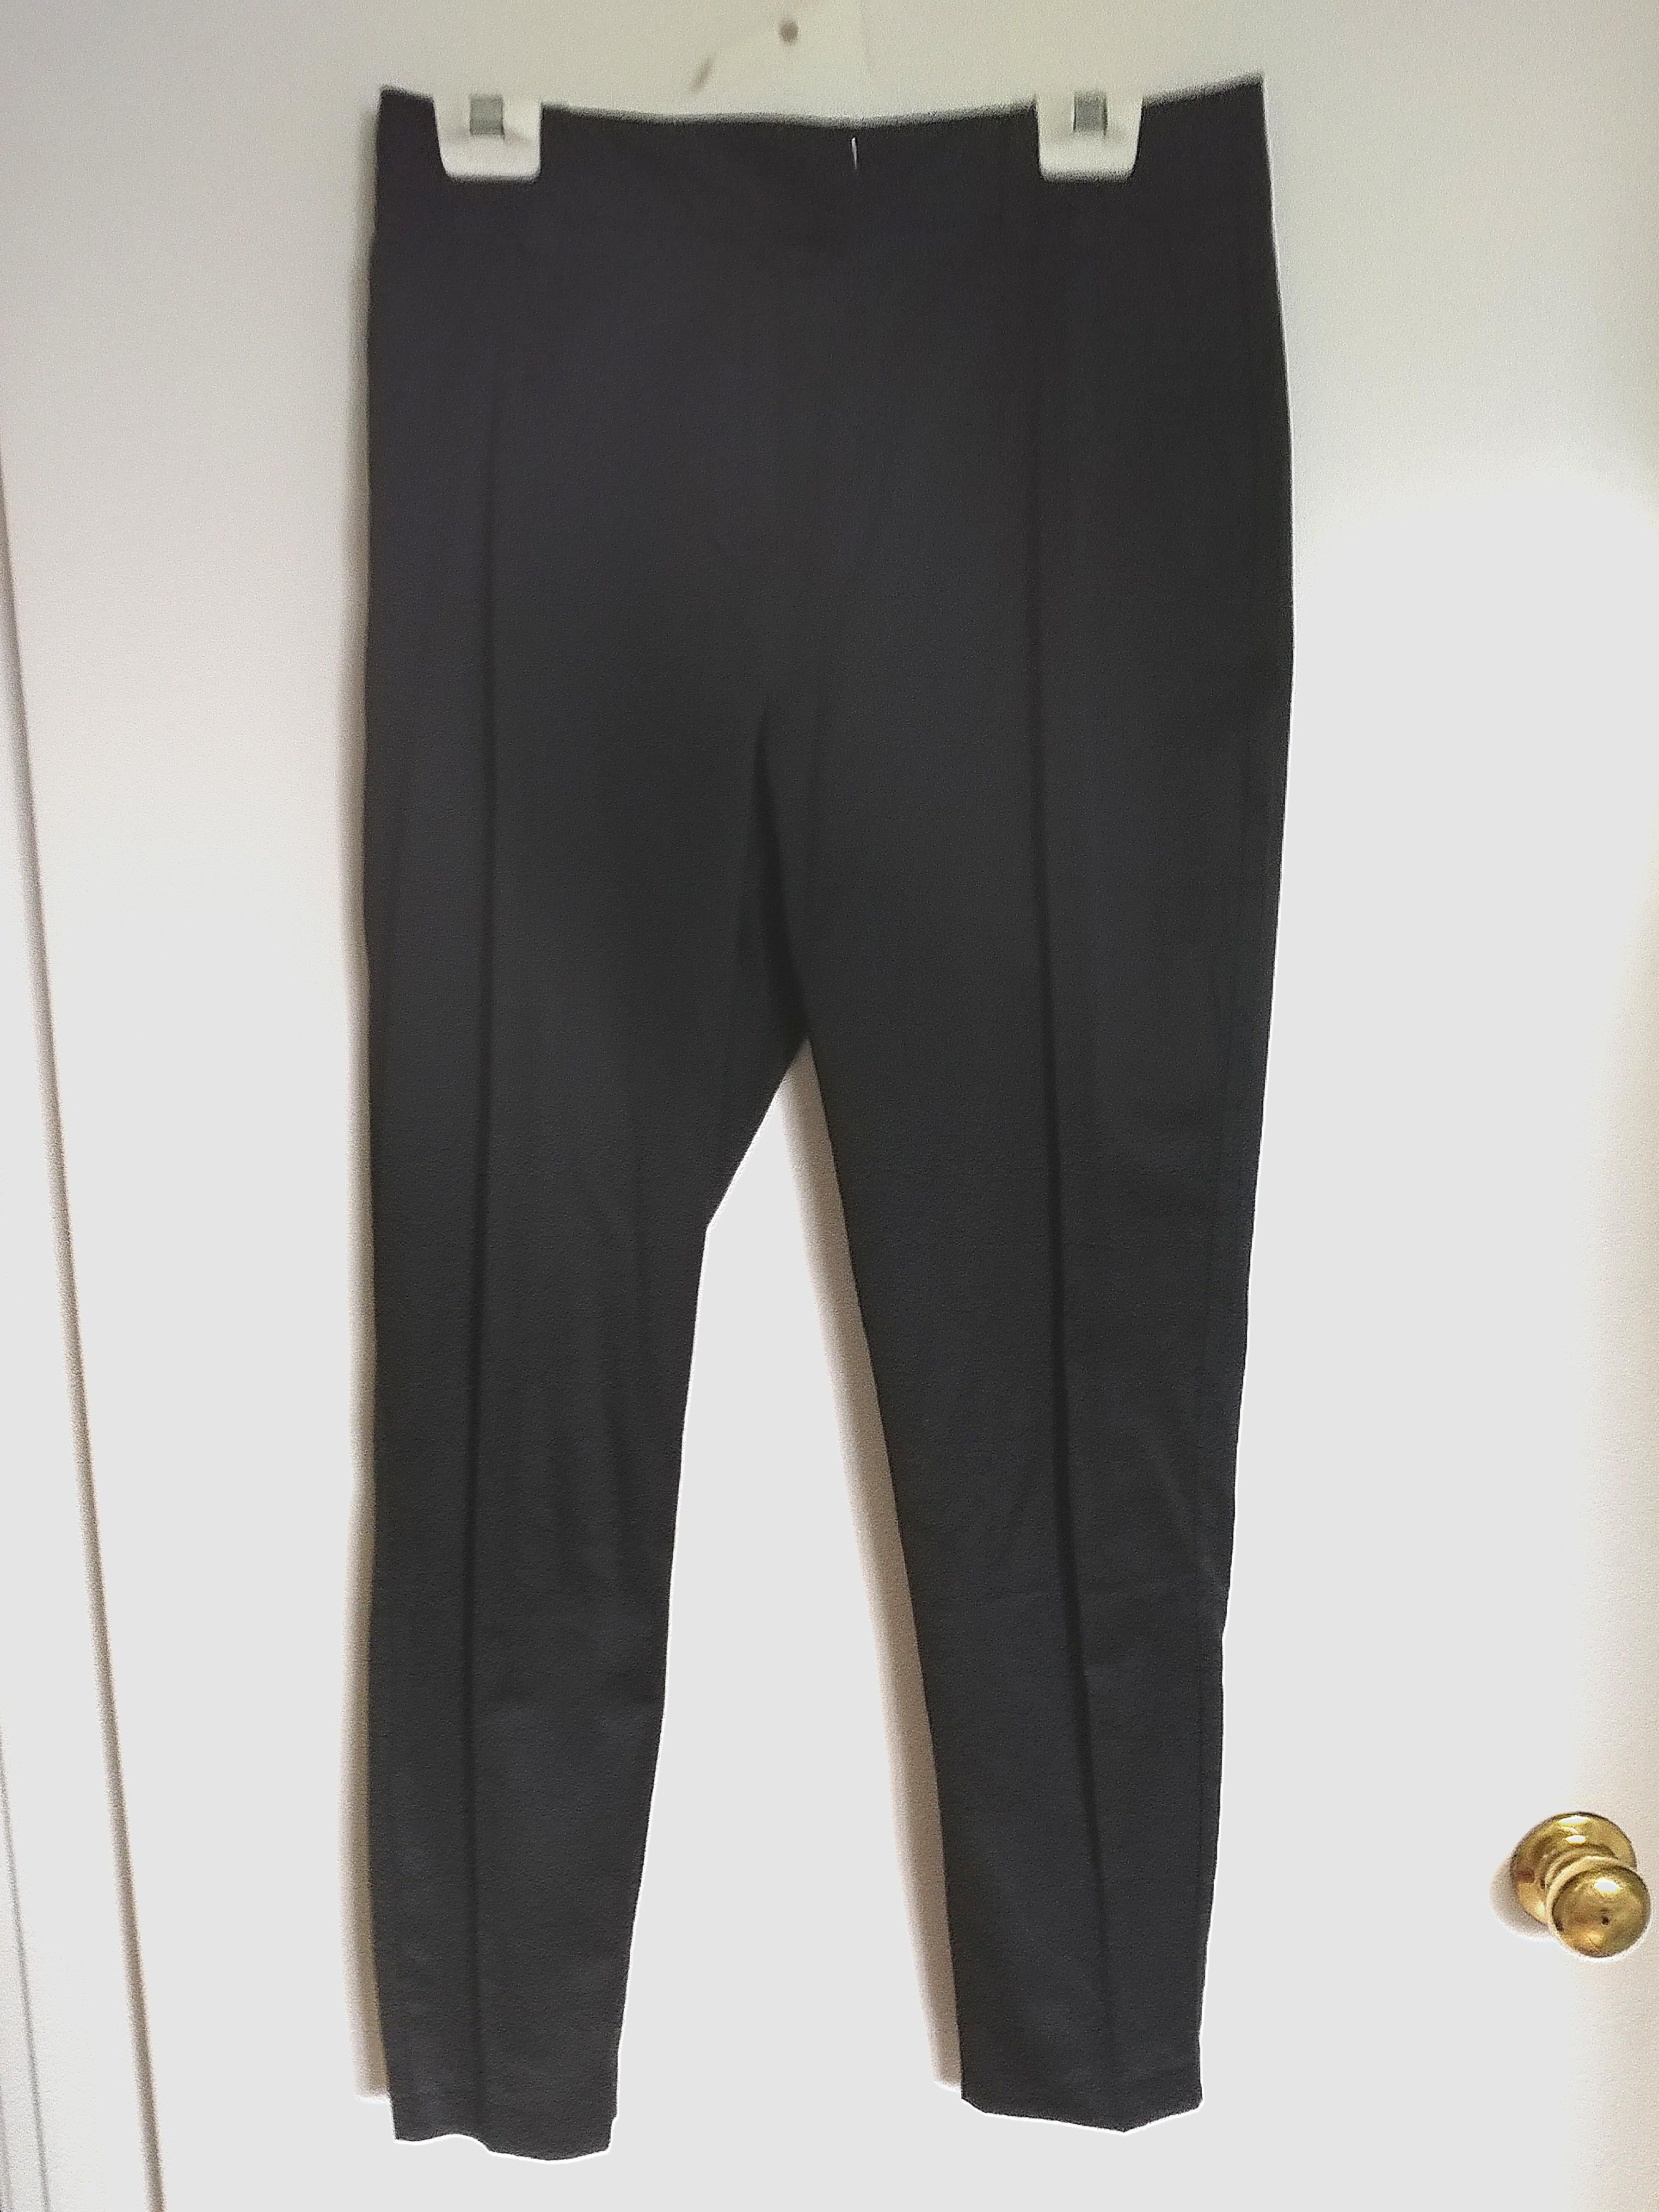 Grace Hill Slim Black Satin Office Pants AU10